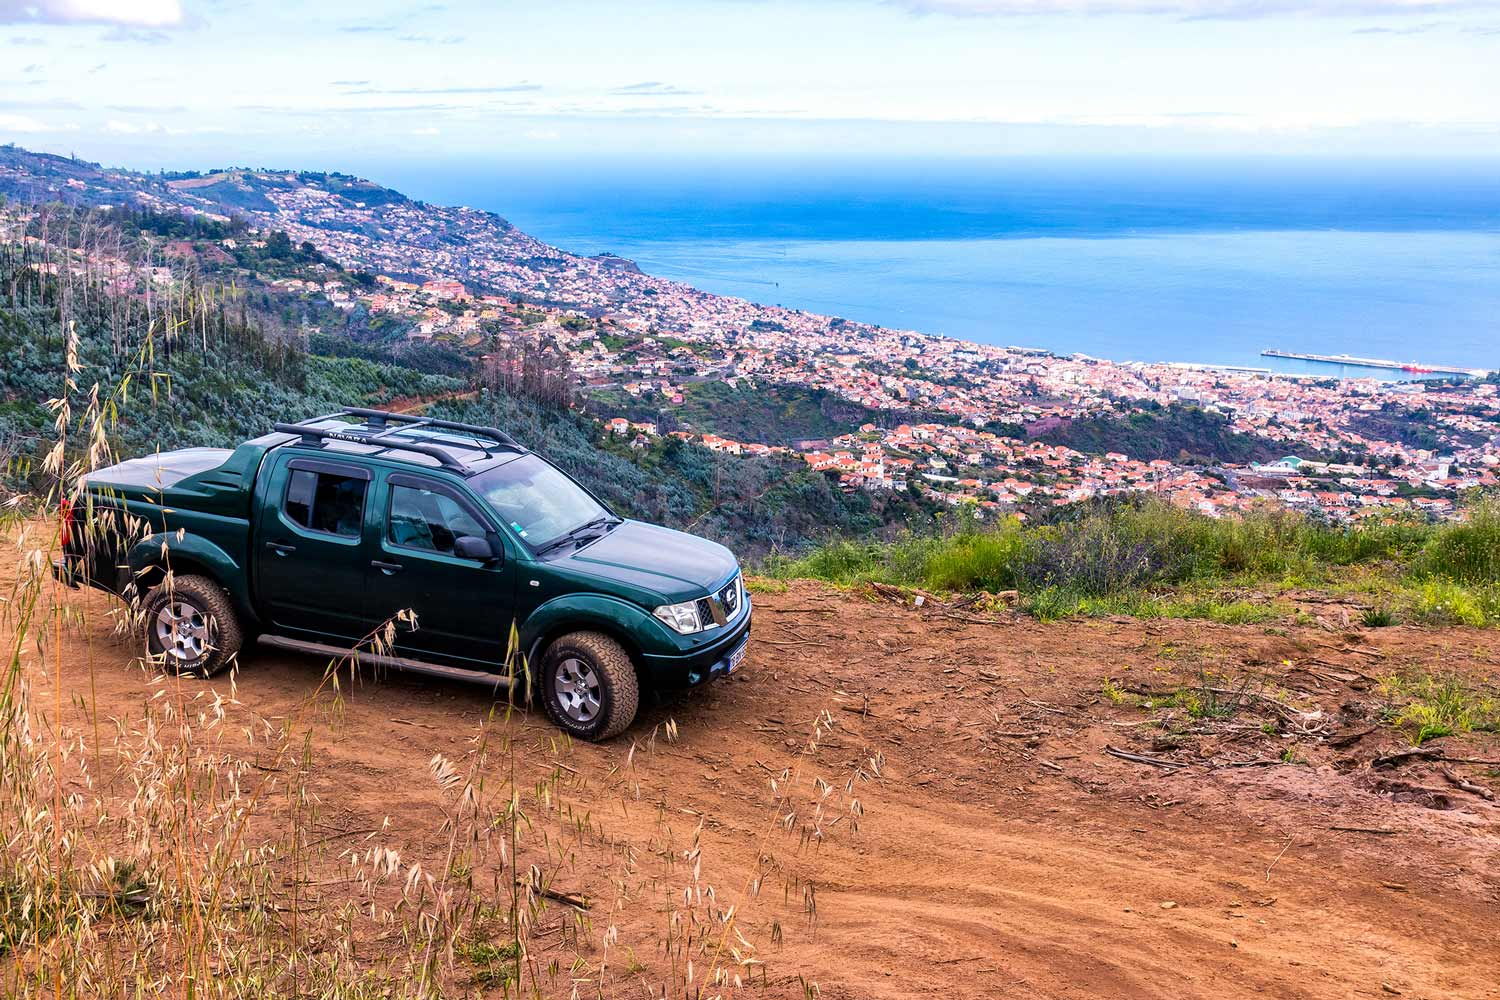 A Nissan Navara off-road in the mountains of Funchal